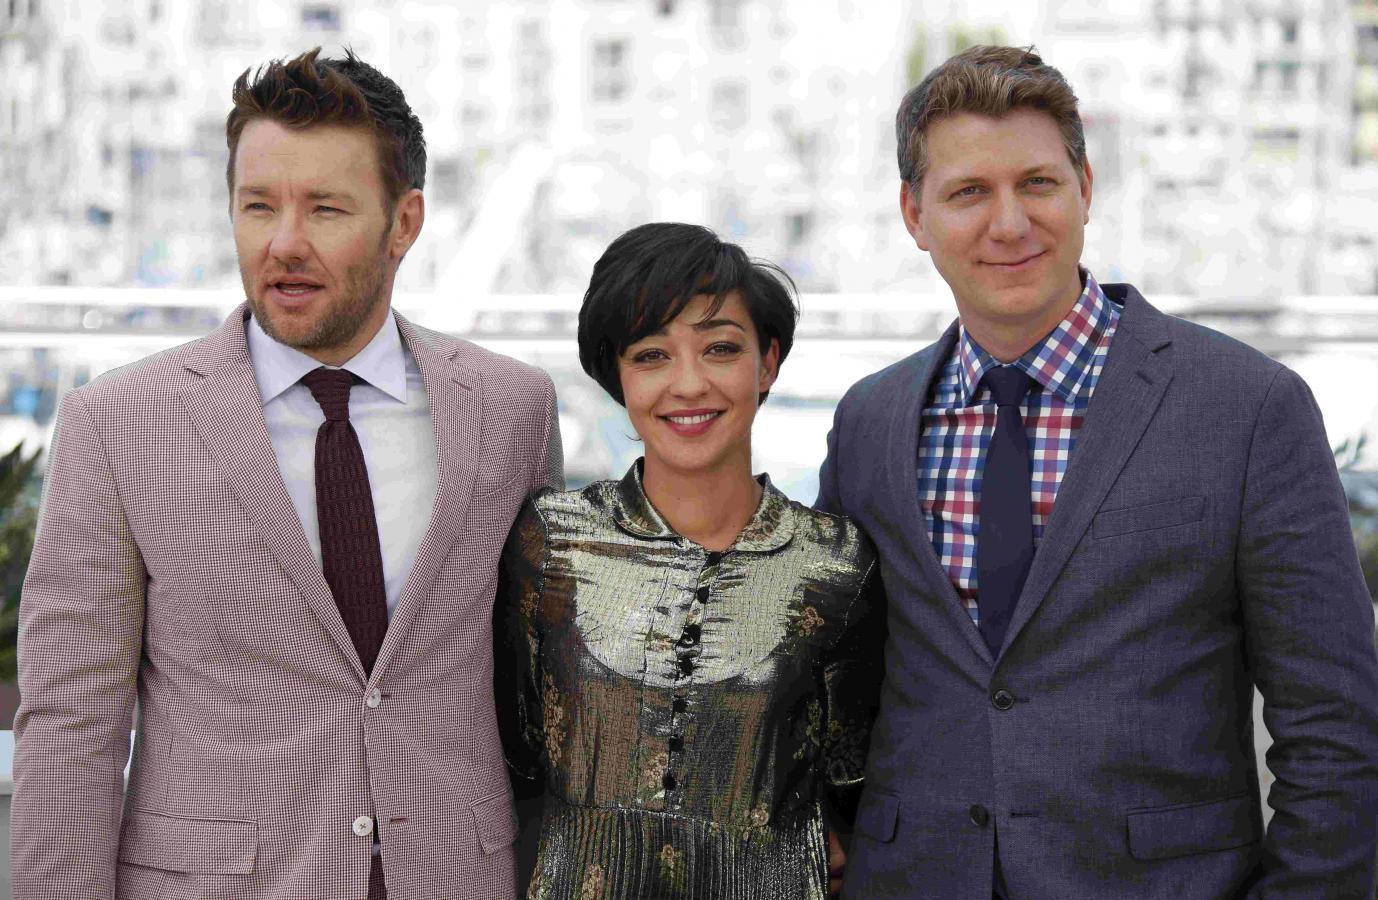 Loving' spotlights interracial couple who changed U.S. marriage laws ...